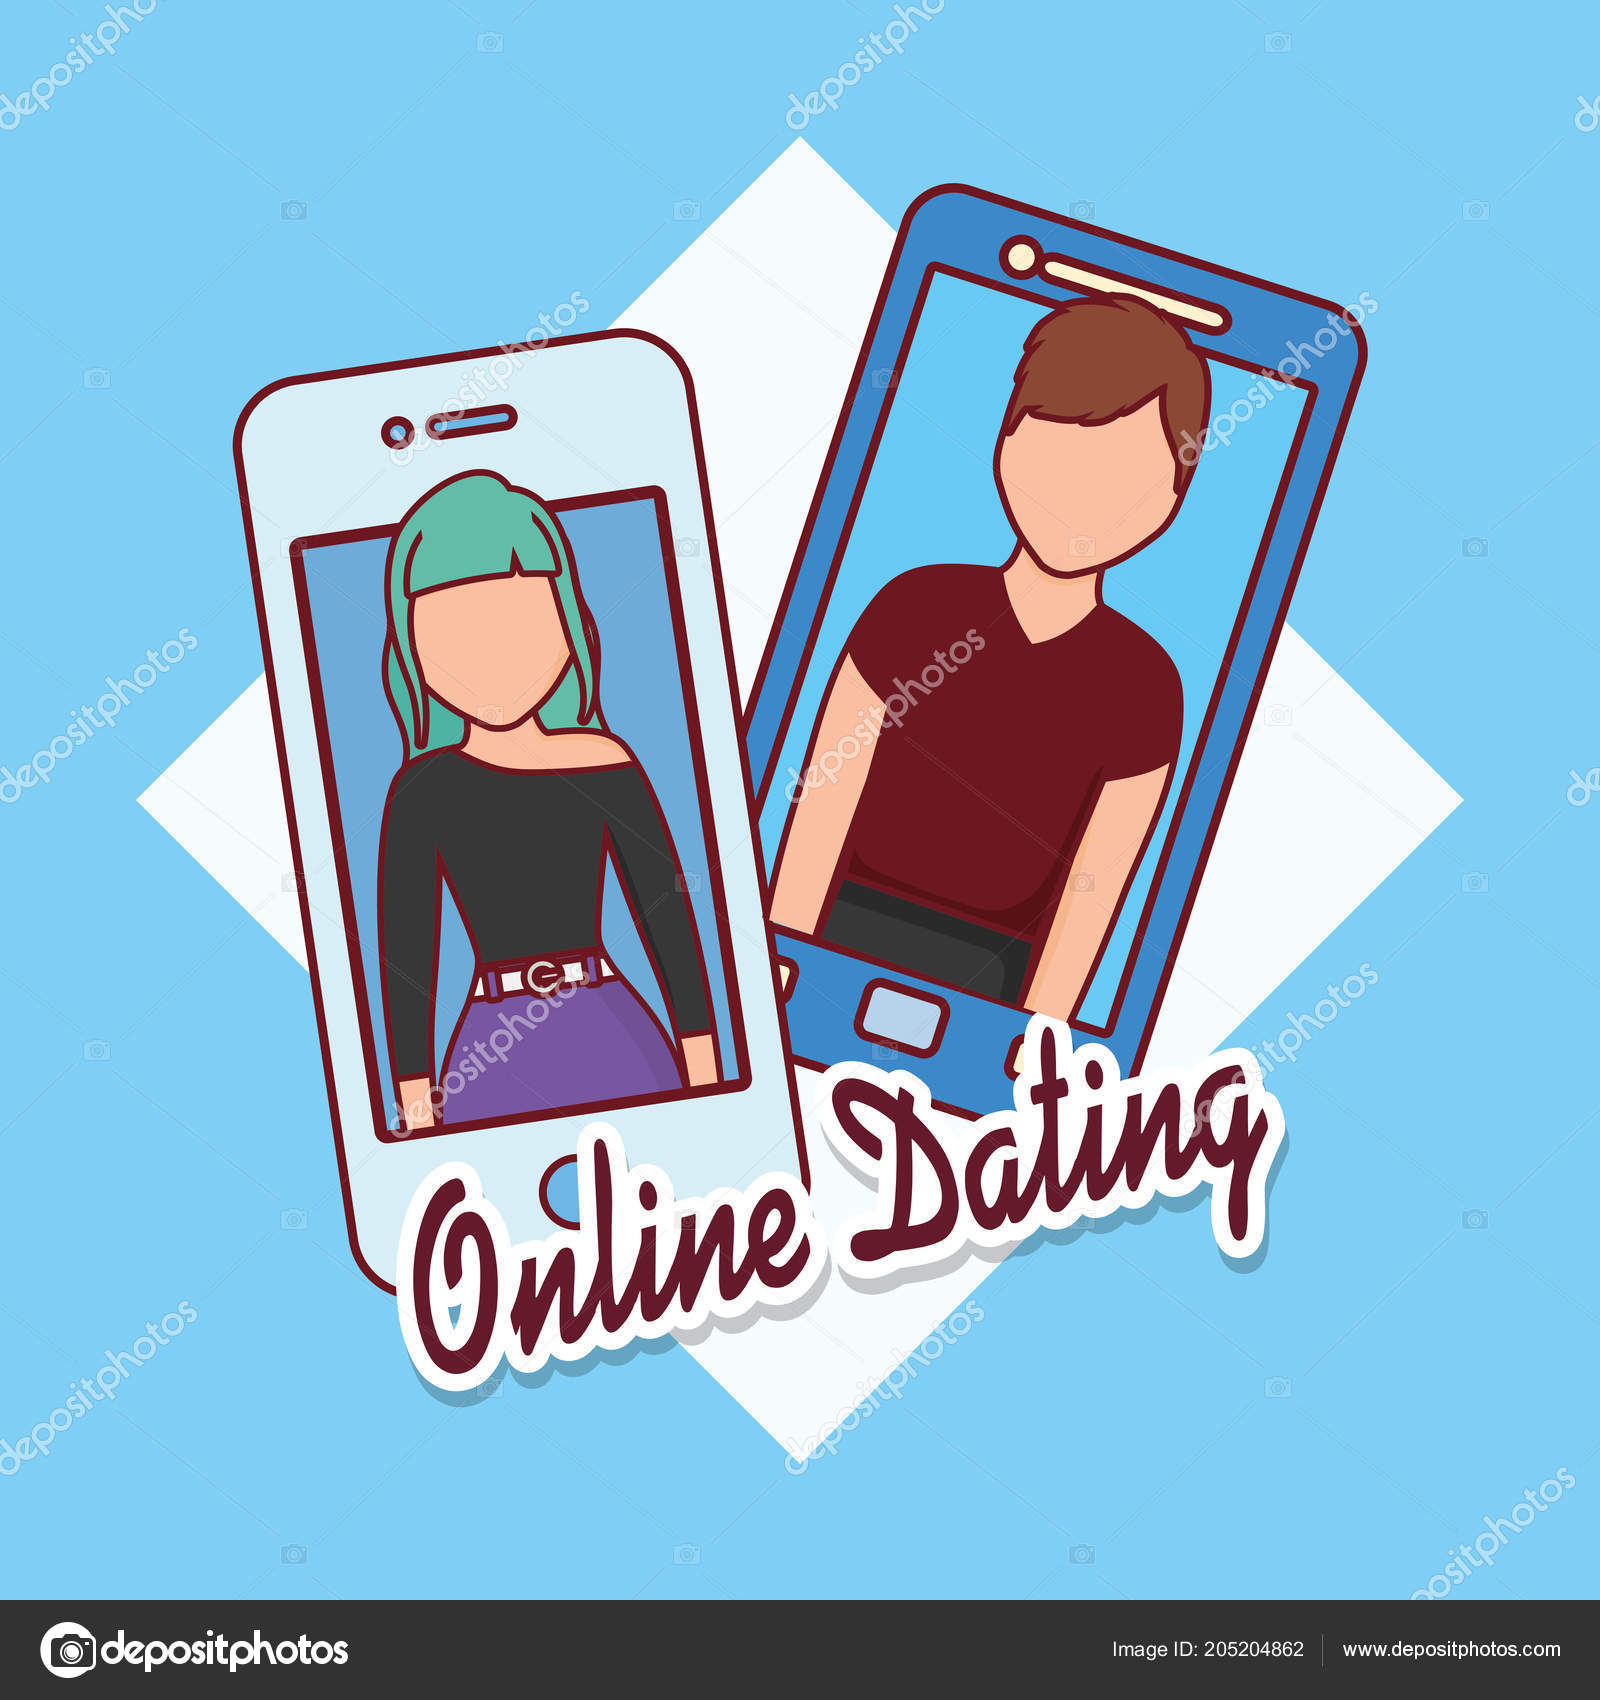 online dating illustration